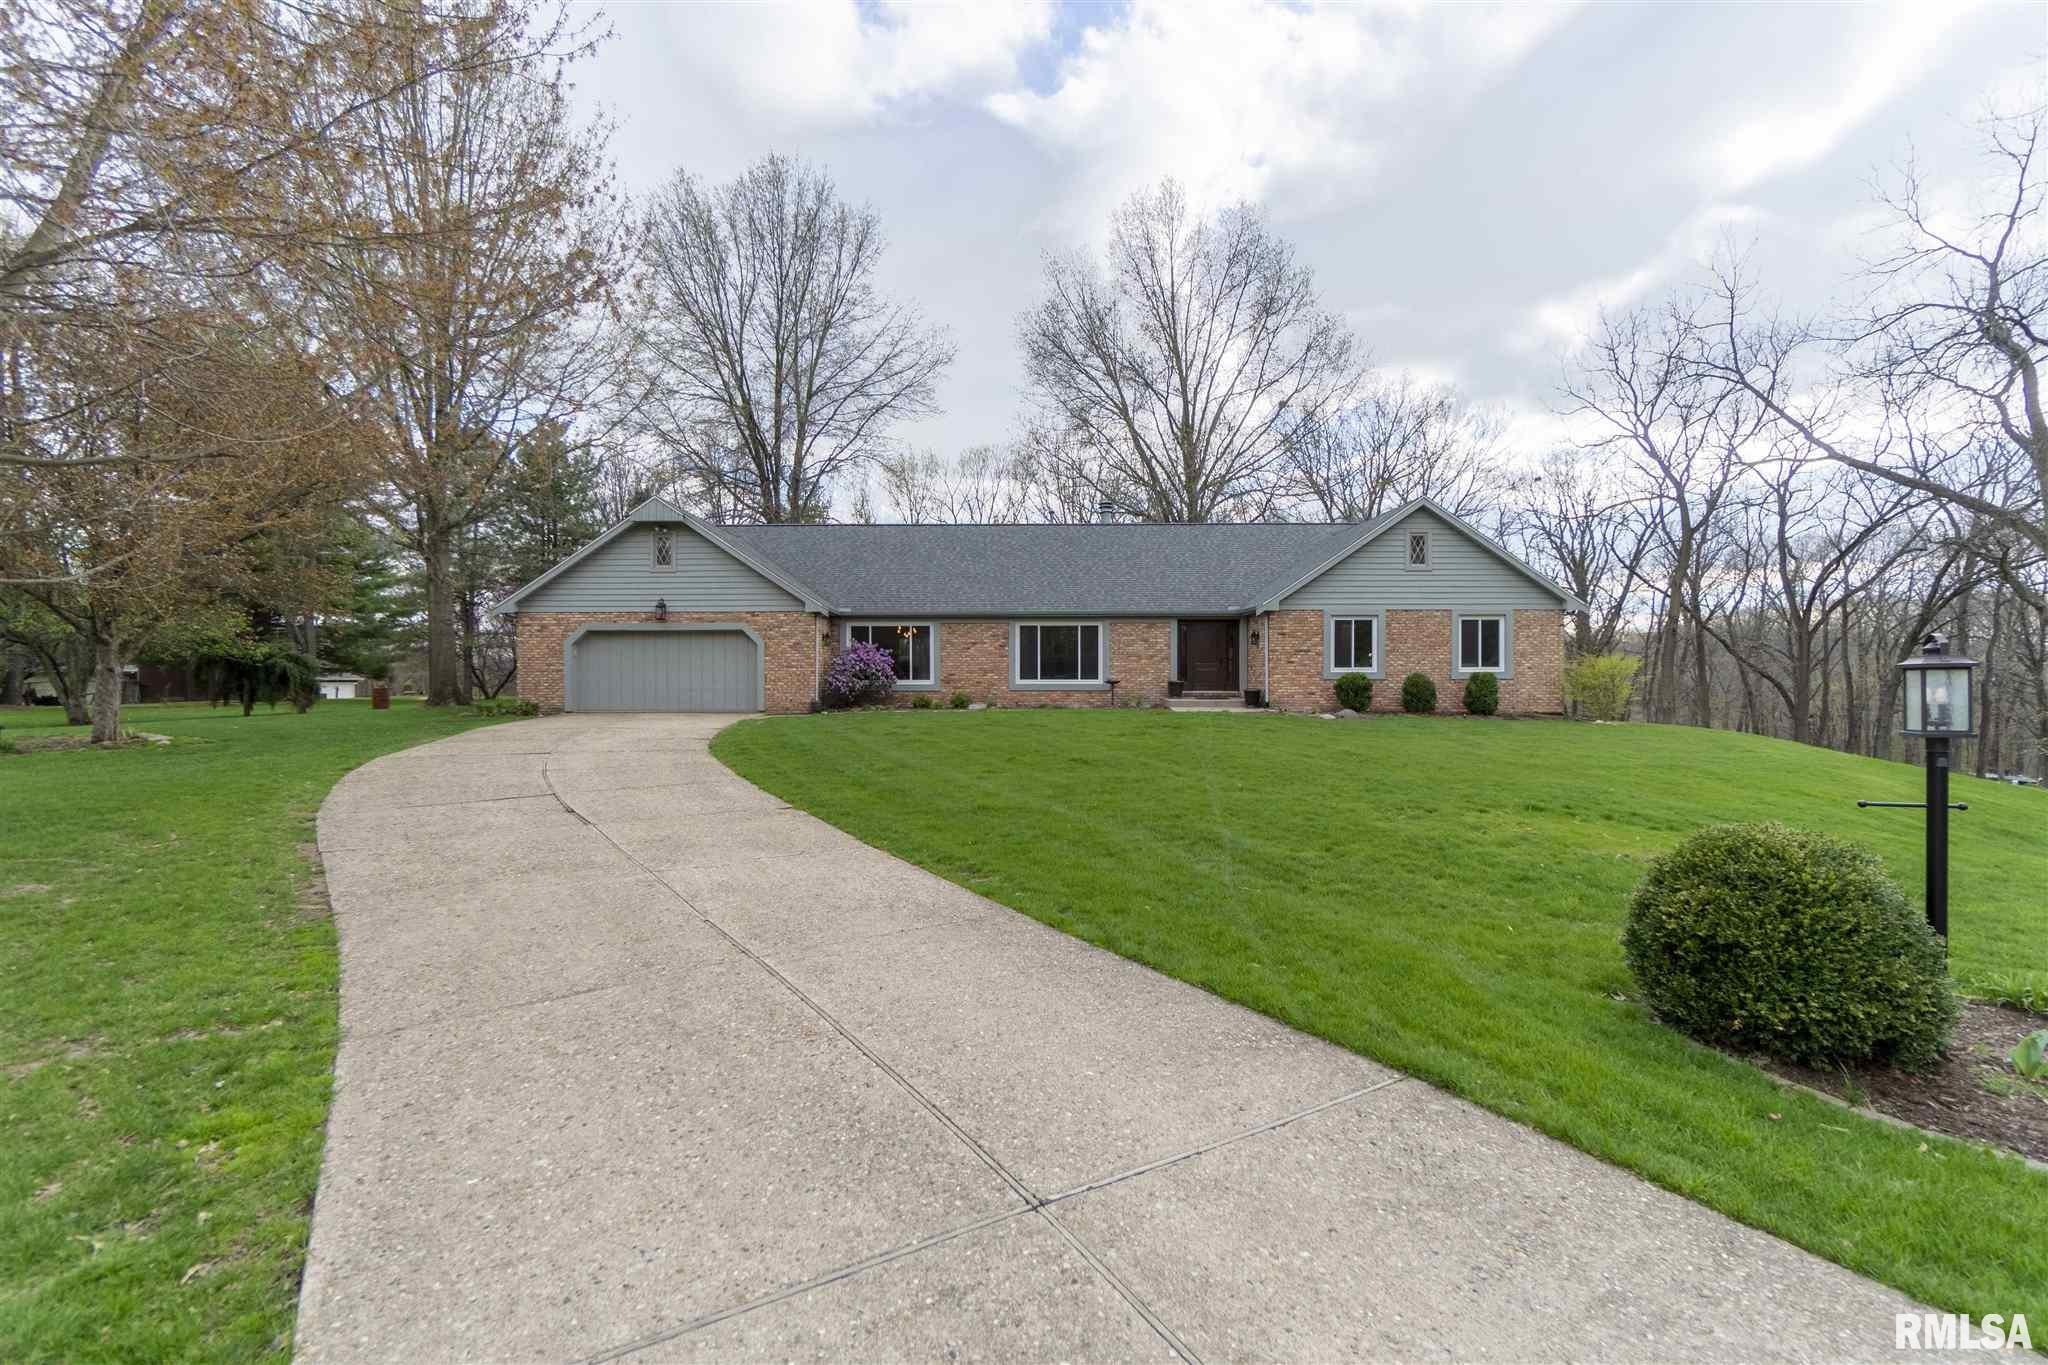 9918 W COUNTRYSIDE Property Photo - Edwards, IL real estate listing